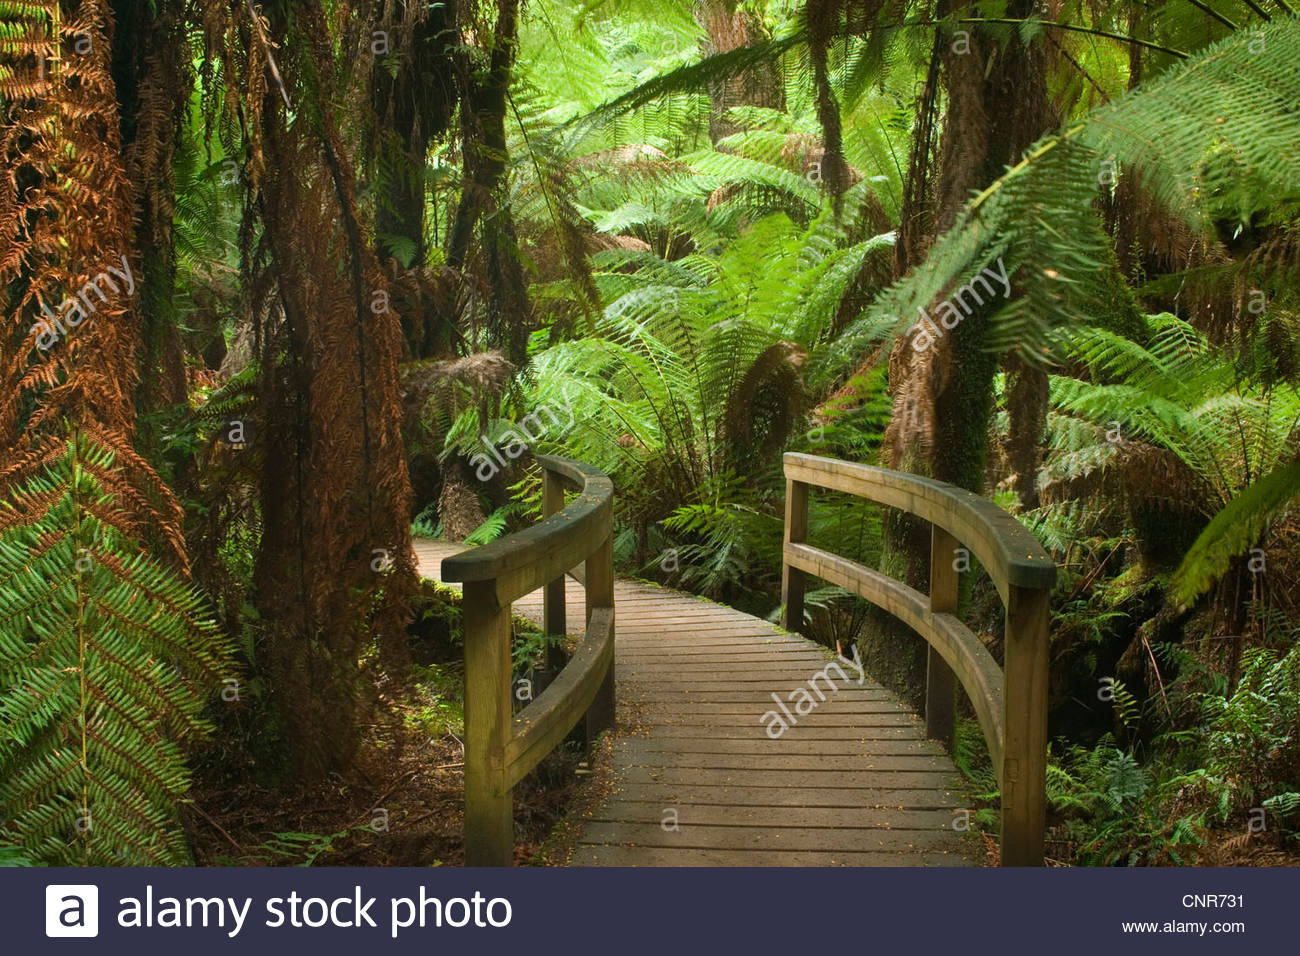 Idyllic path - a path leads through a gully with lots of treefern in a lush temperate rainforest , Australia, Victoria, - Stock Image